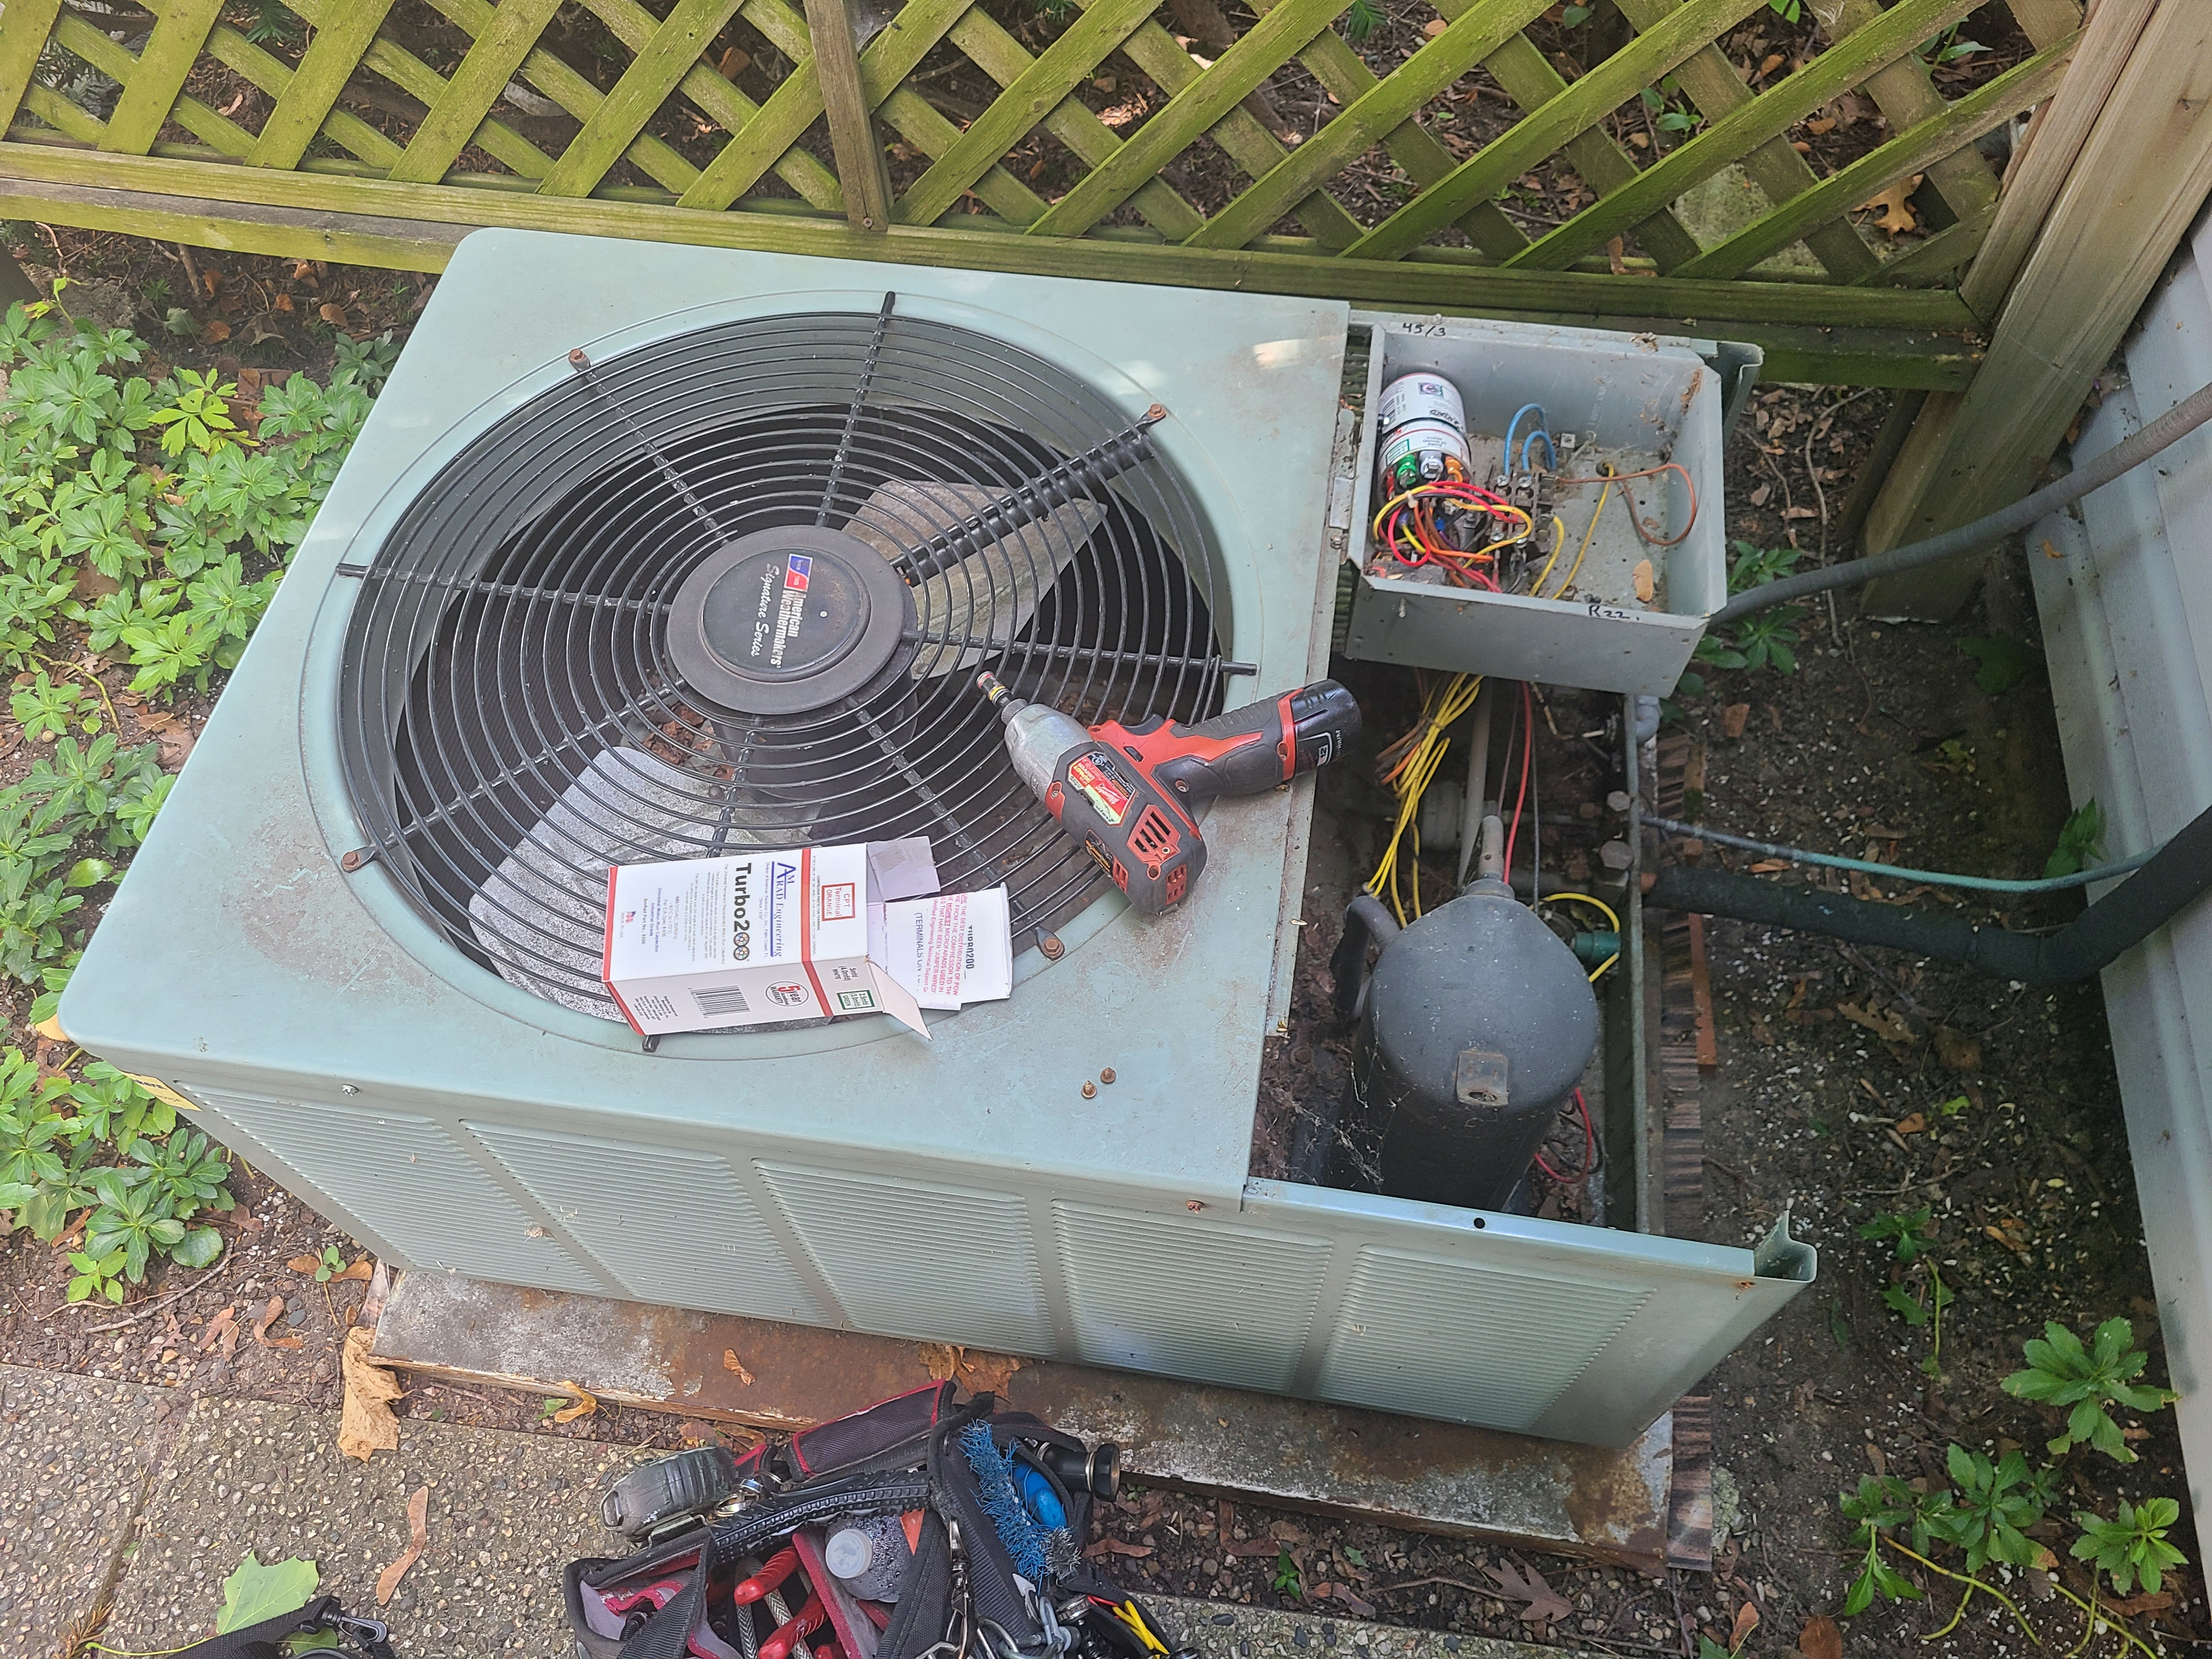 Rheem air conditioning unit no cooling operation diagnosed and repaired, new capacitor.